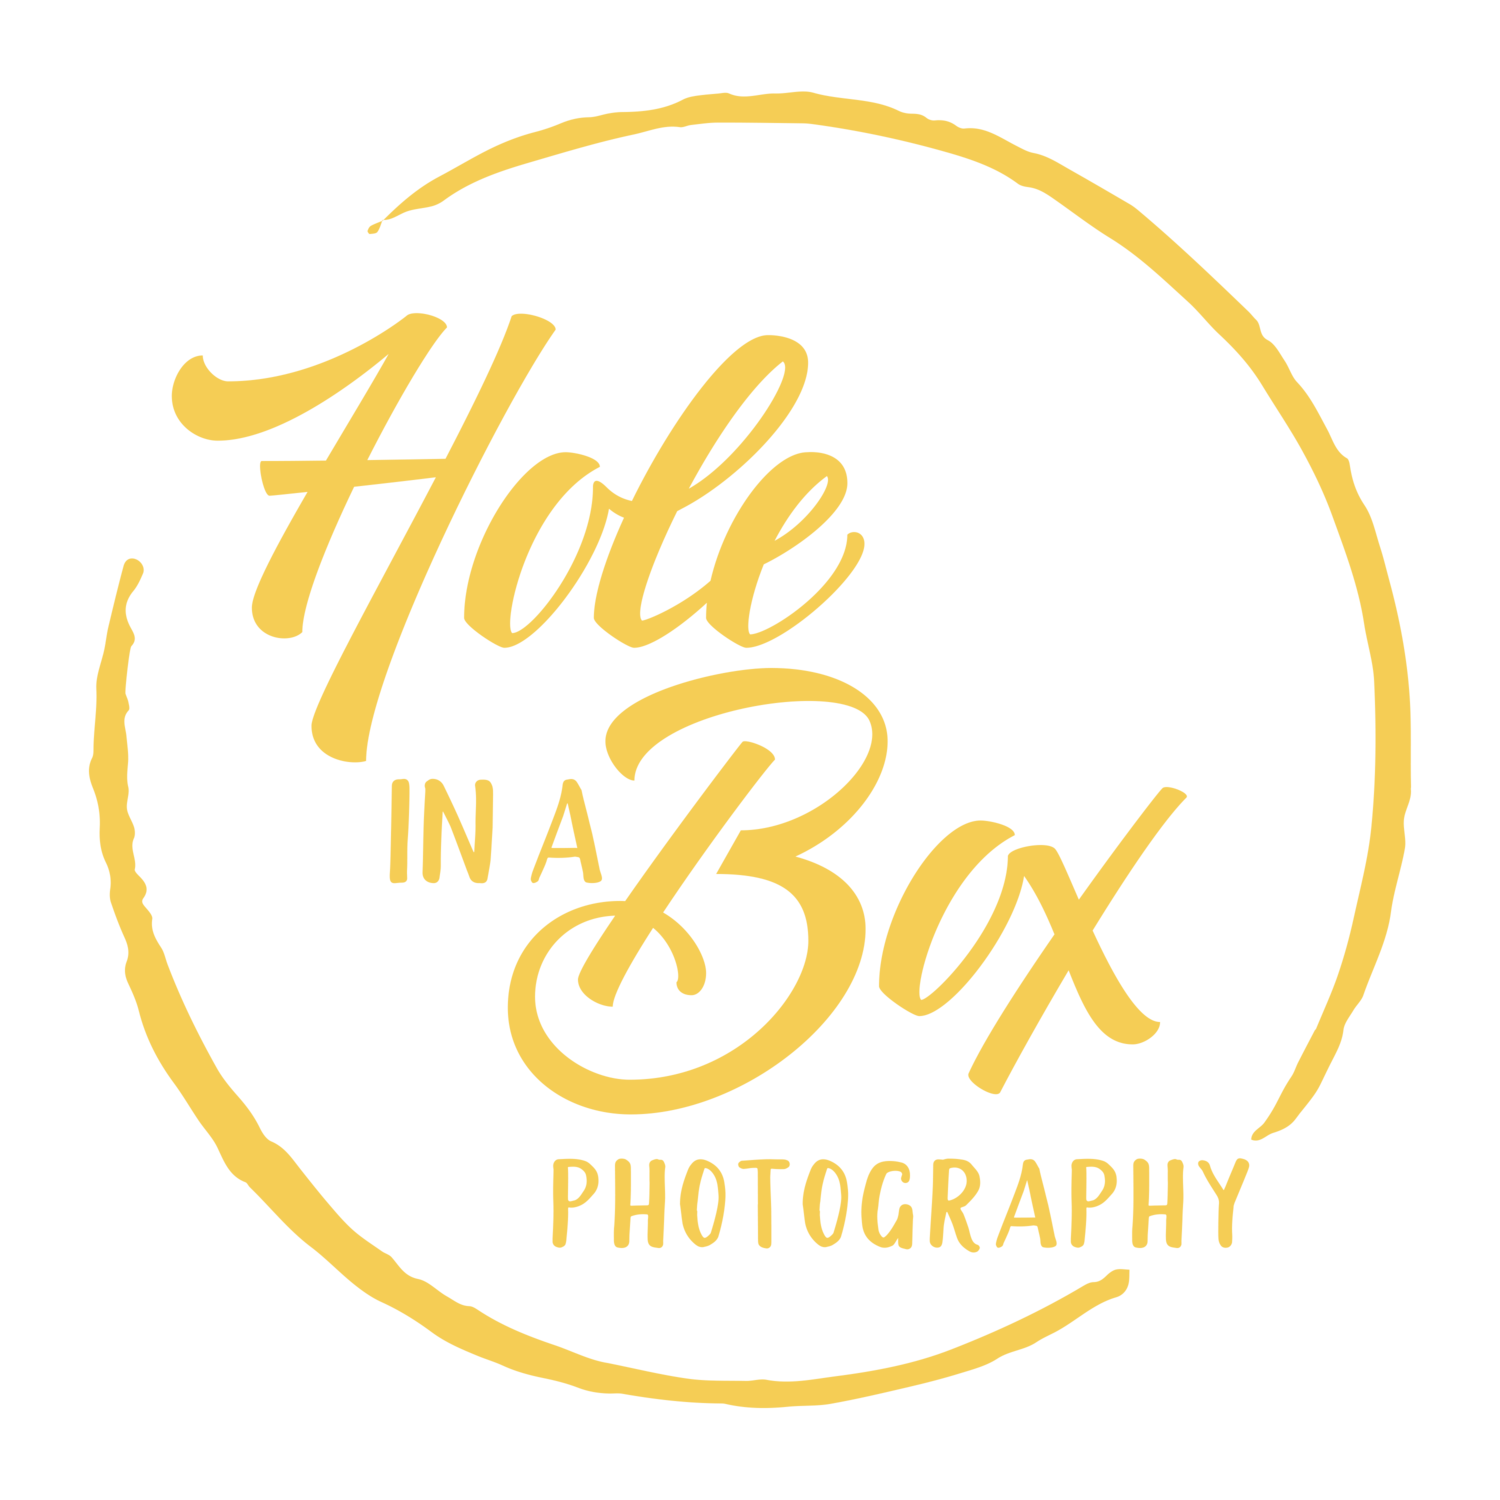 Hole in a Box